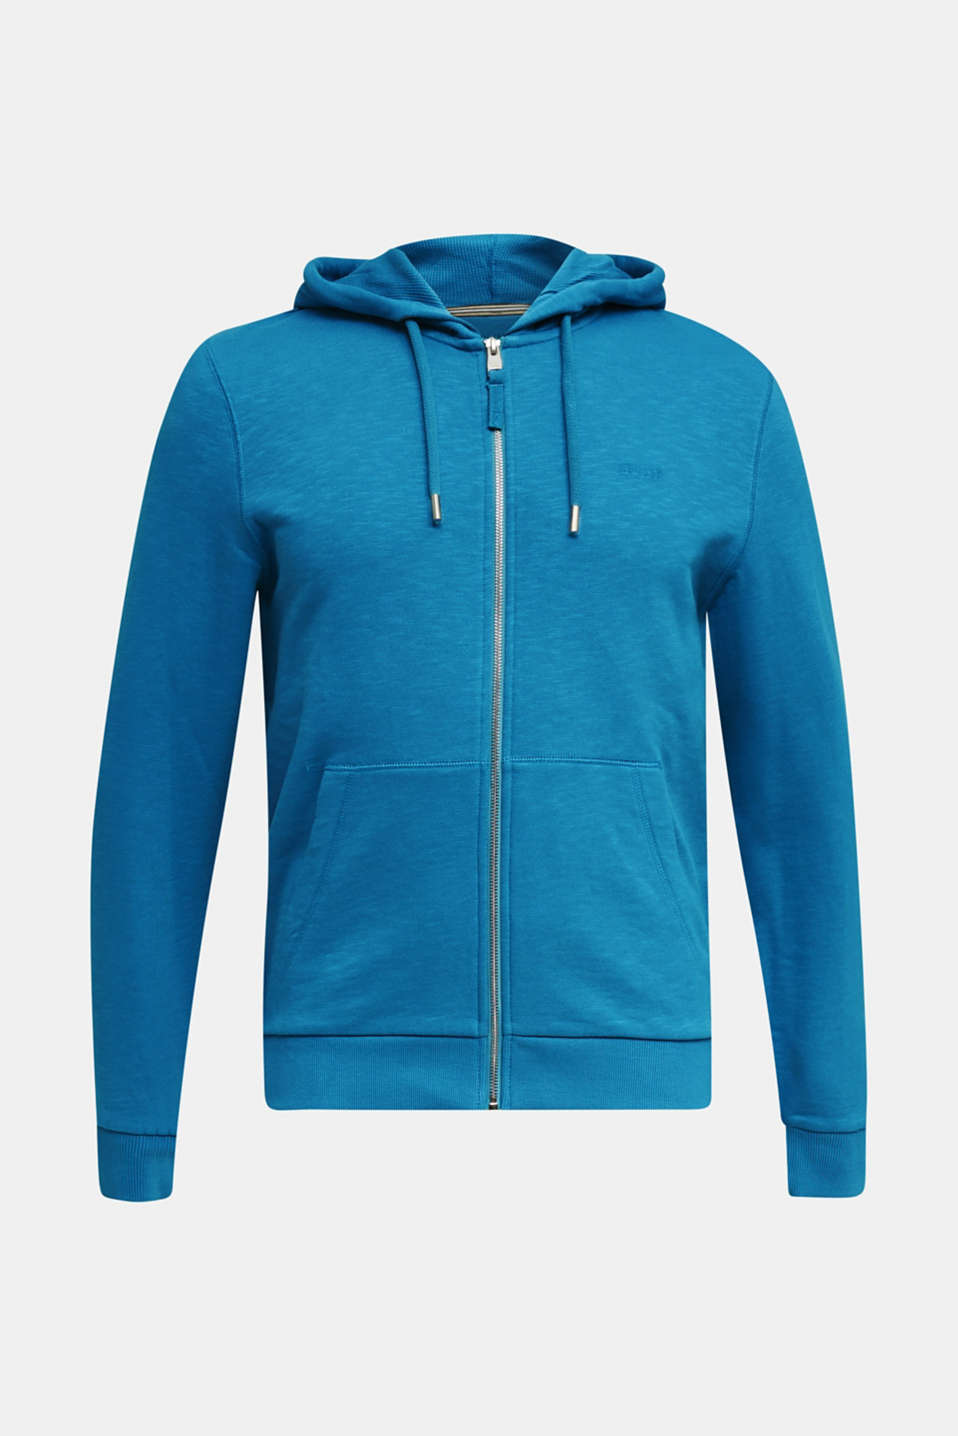 Sweatshirt cardigan with hood, 100% cotton, PETROL BLUE, detail image number 6